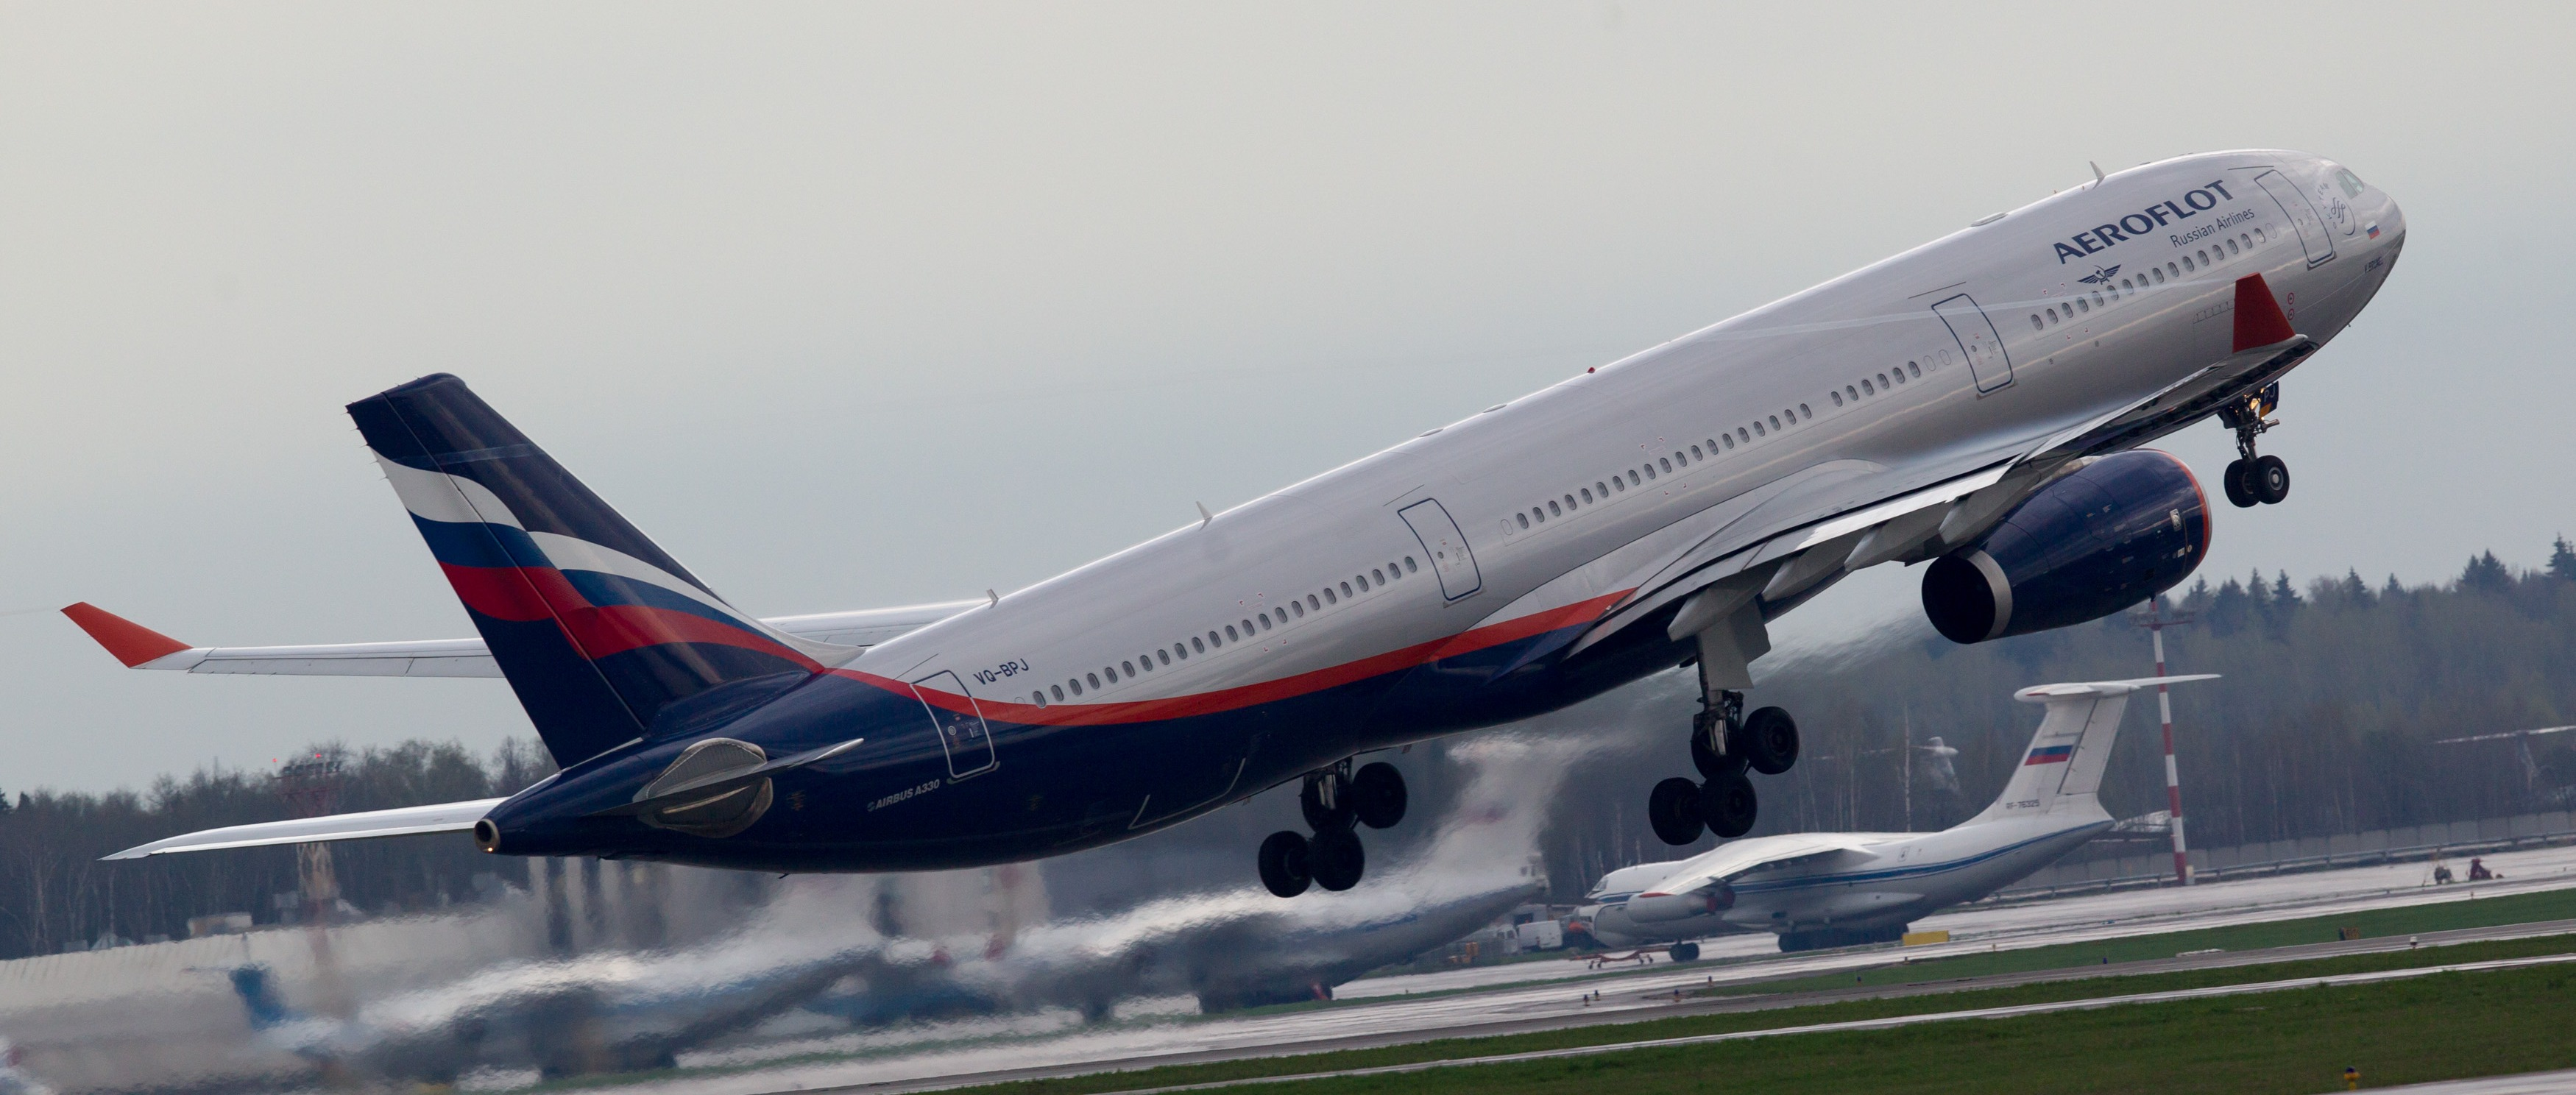 Named the best airlines of Russia